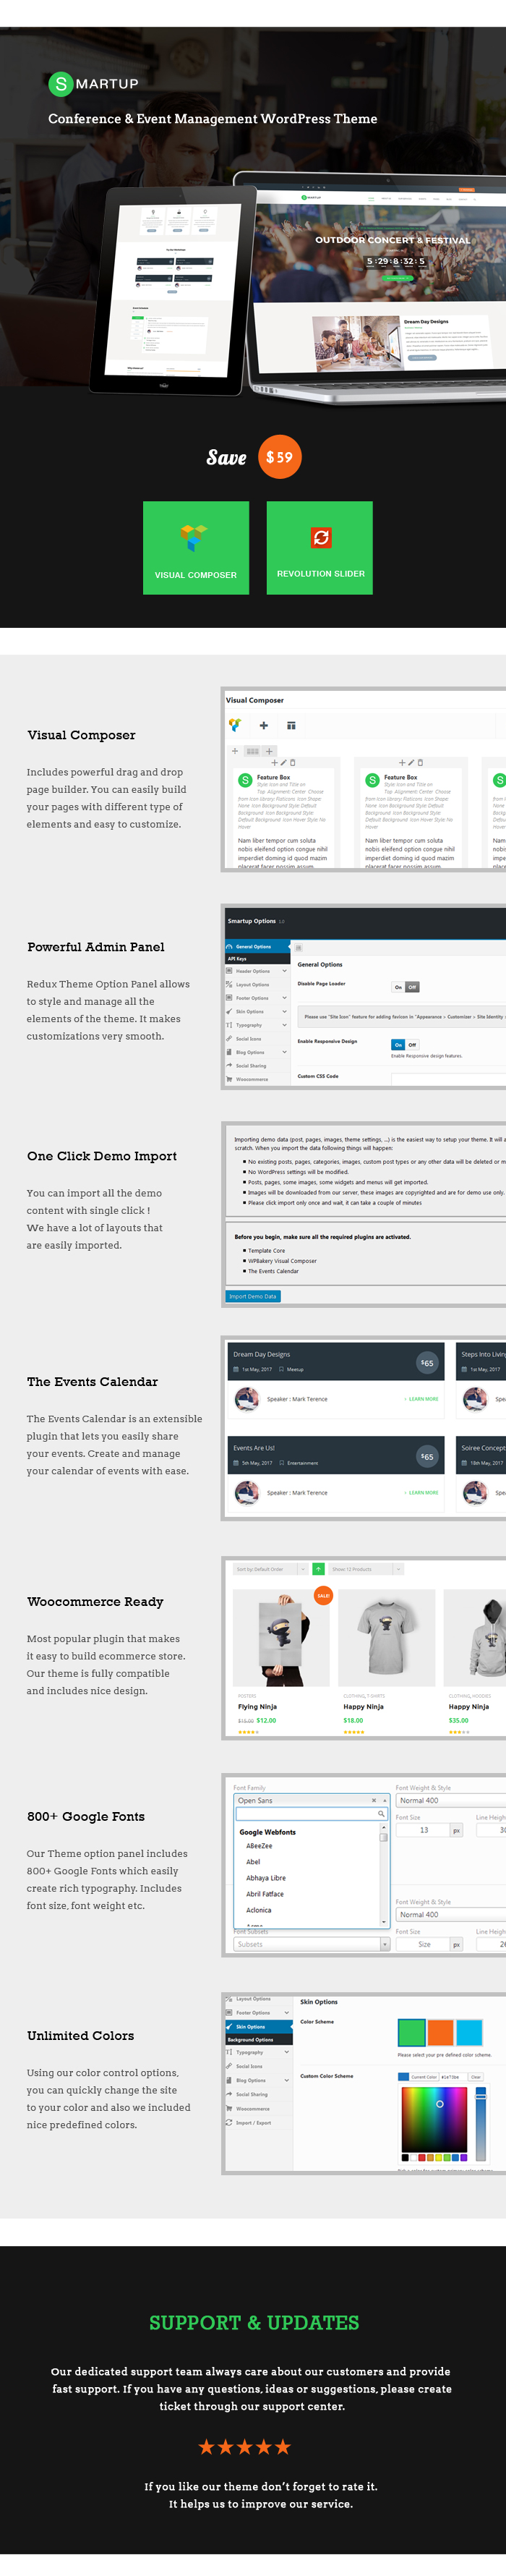 Smart Up - Conference & Event Management WordPress Theme - 1